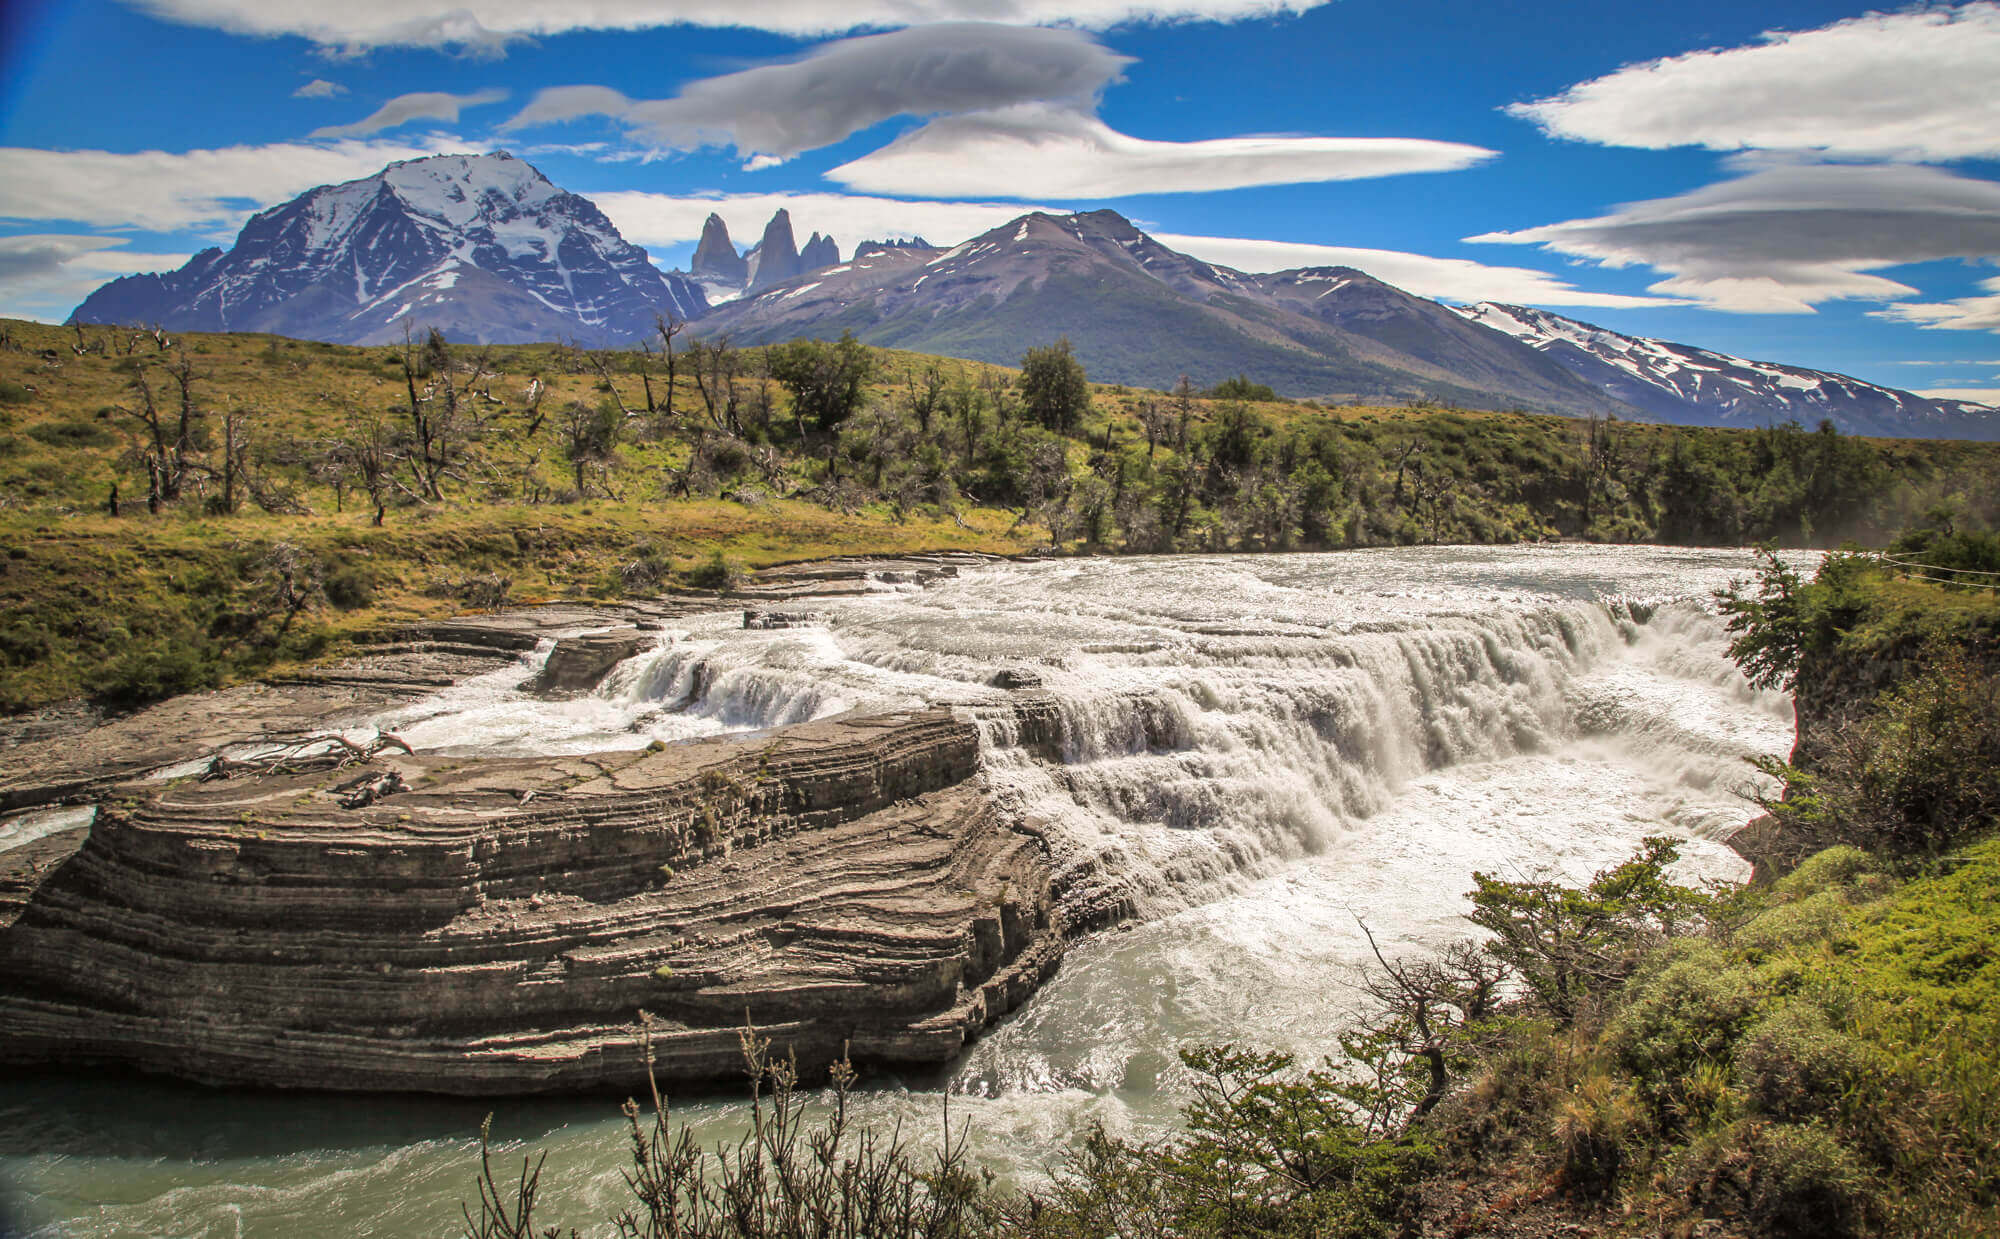 View of The Towers Torres del Paine